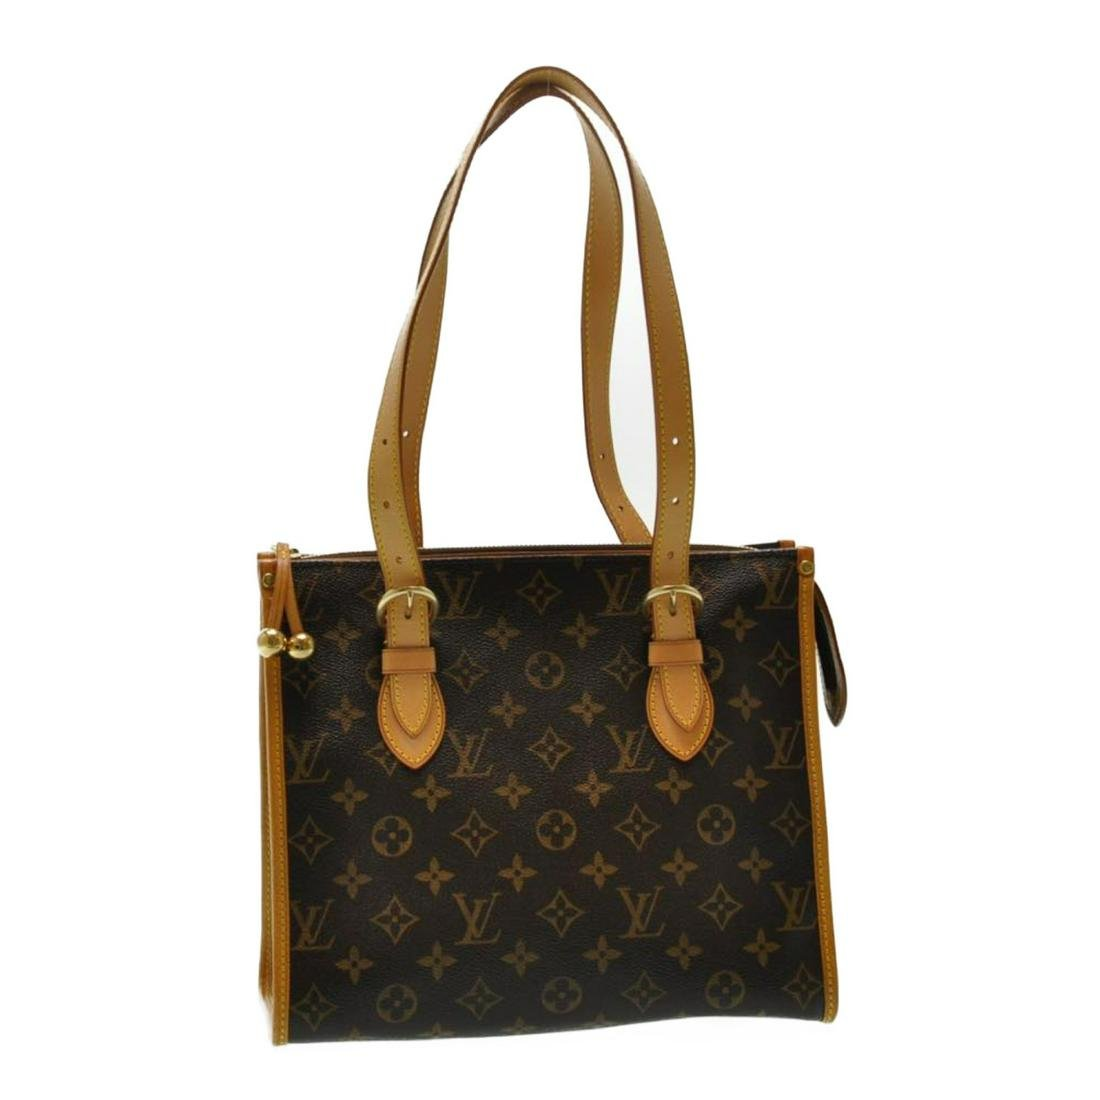 Authentic LOUIS VUITTON TOTE Monogram Canvas Tote Bag